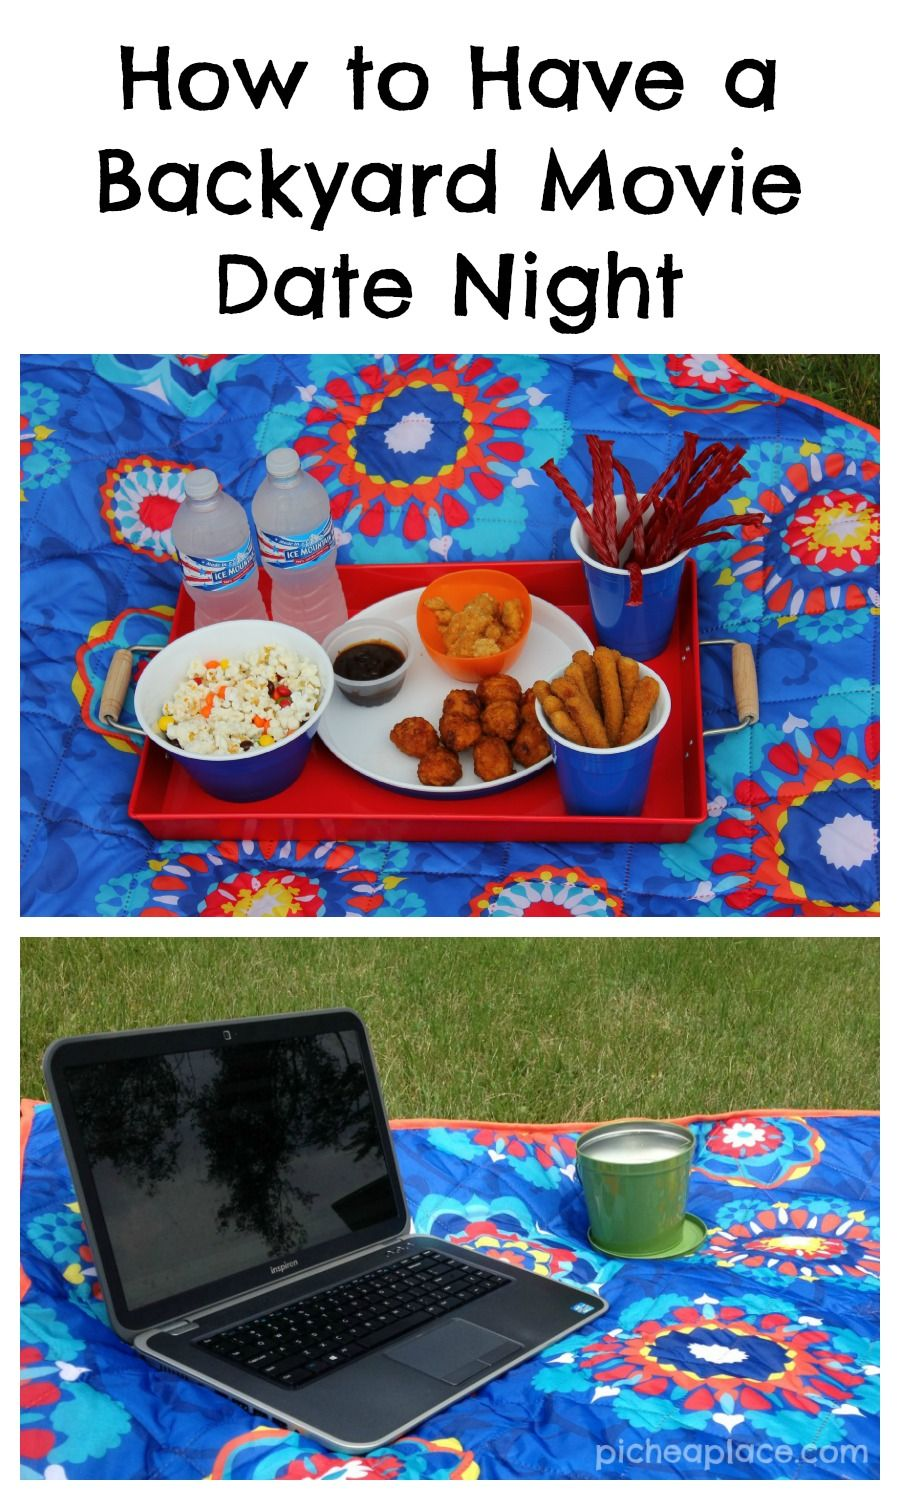 how to have a backyard movie date night garden activities and movie